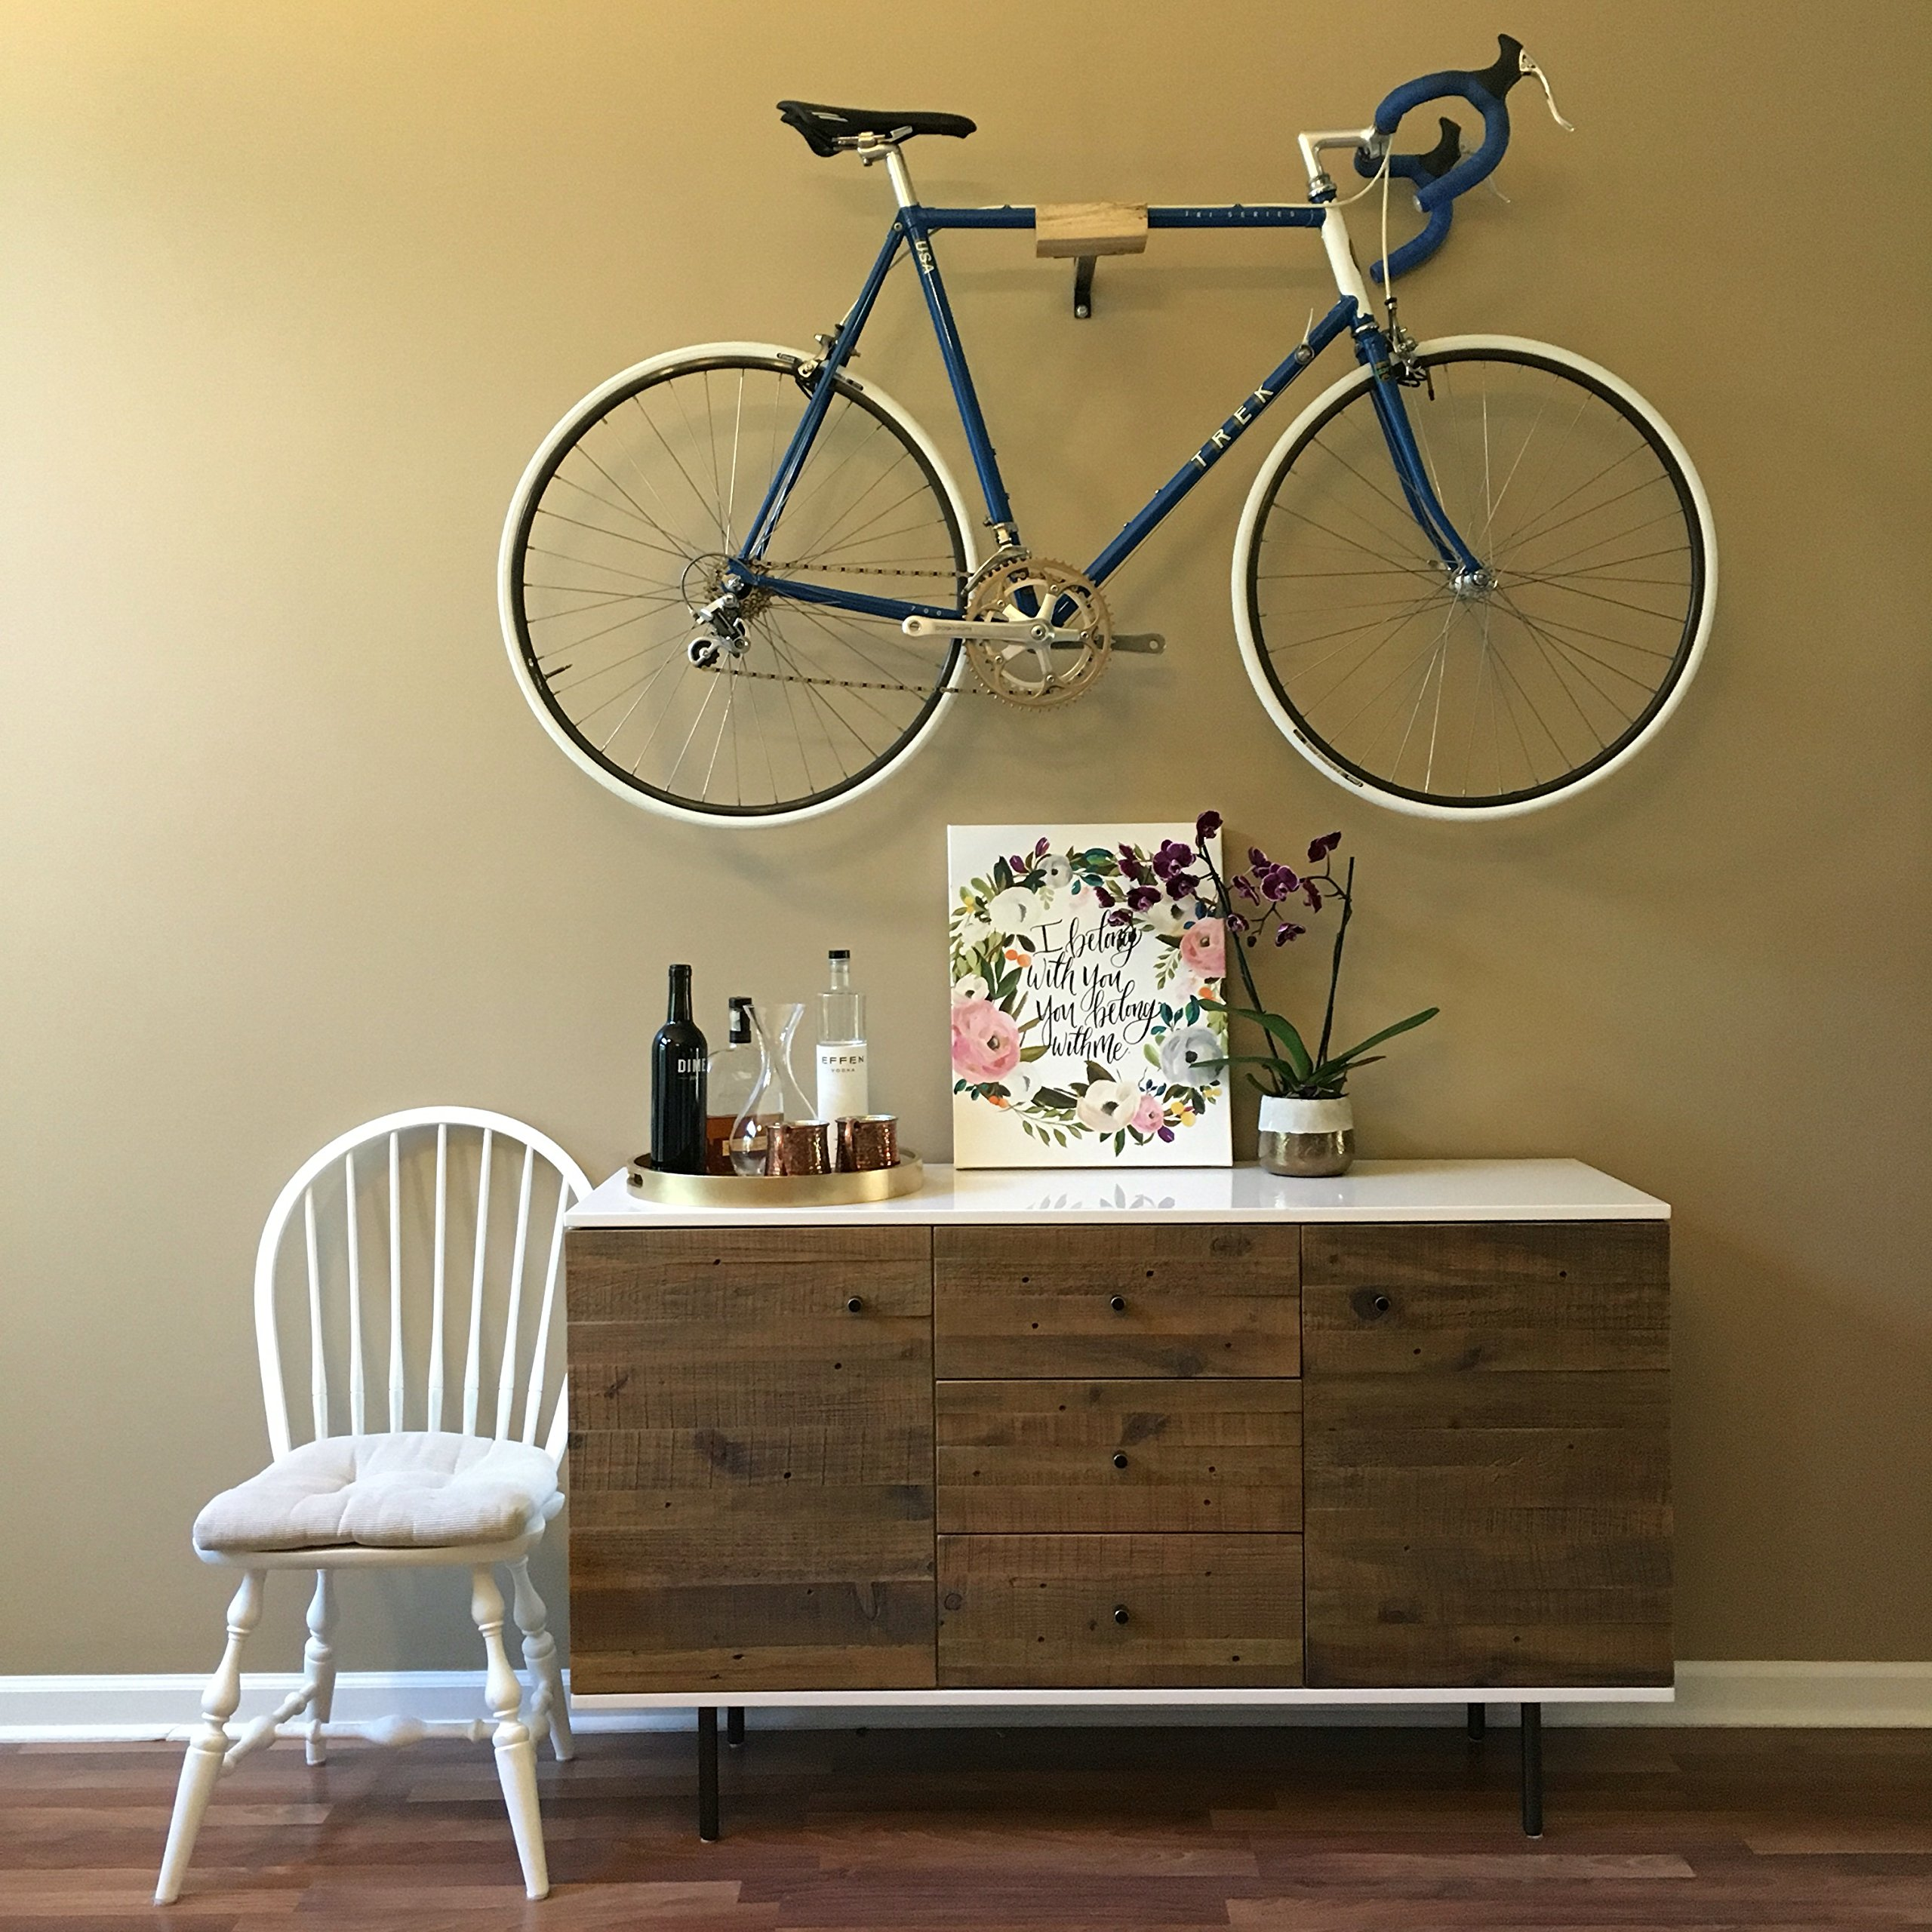 Ash and Steel Indoor Bicycle Wall Mount Hanger Rack by Well Hung Bicycles (Image #3)